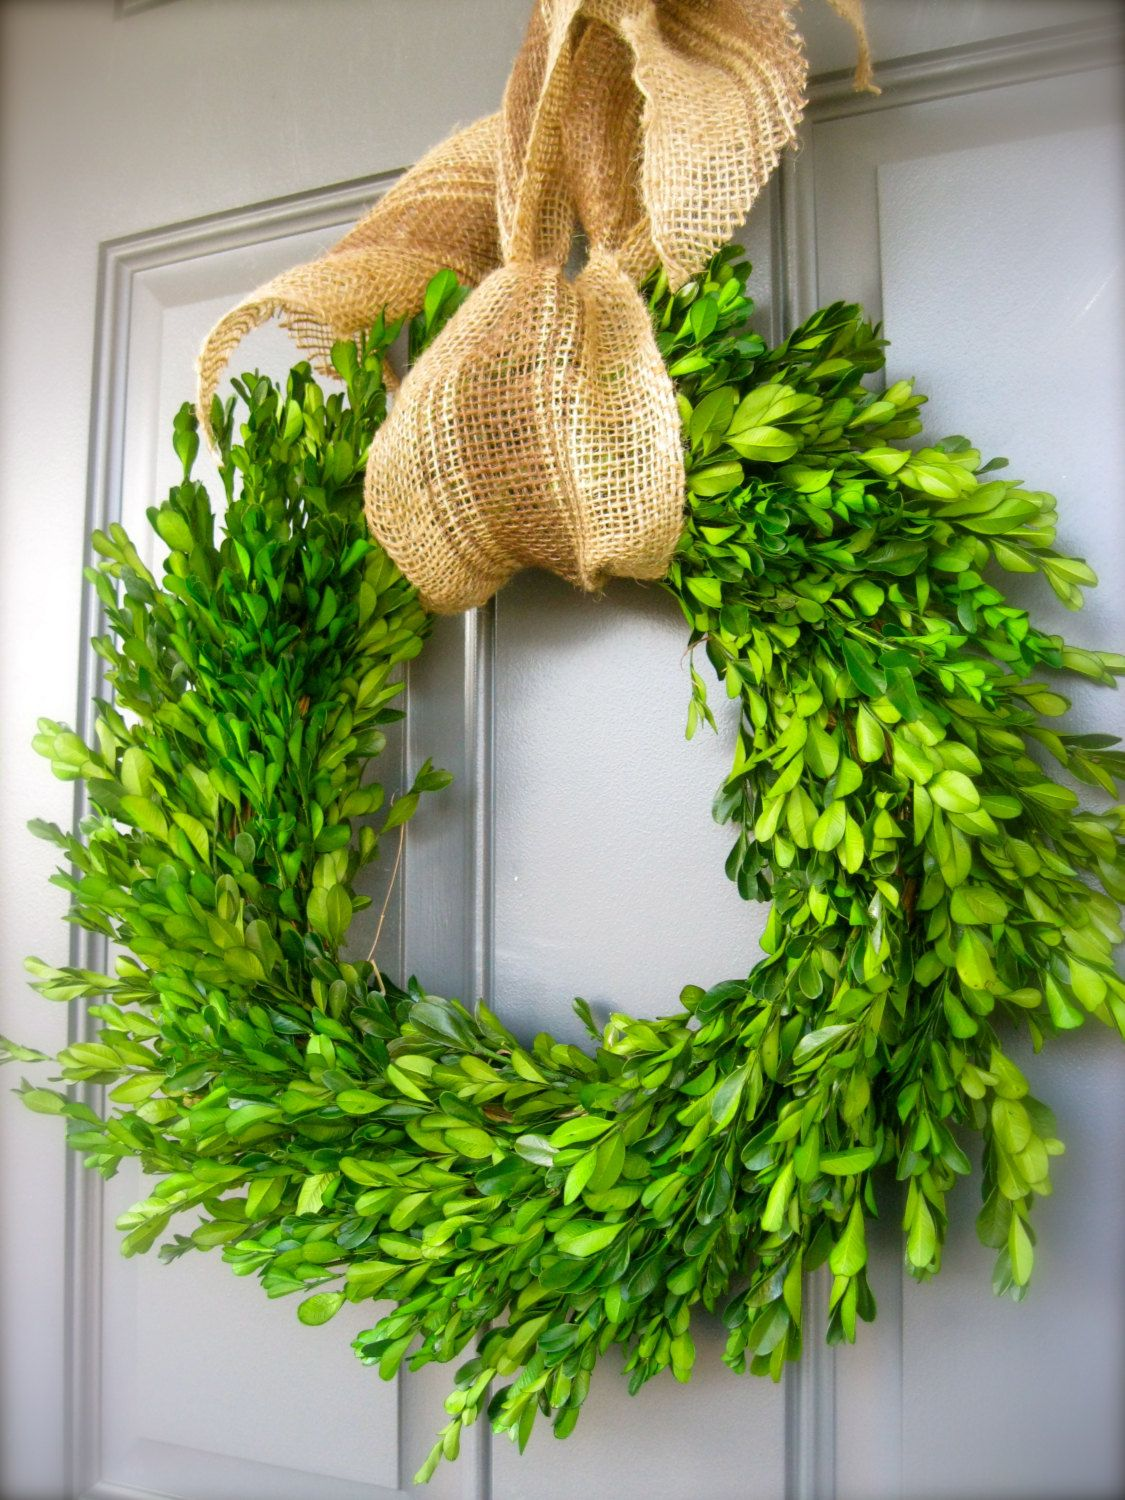 Sale Preserved Boxwood Wreath For Mother S Day Perfect Etsy Preserved Boxwood Wreath Natural Wreath Boxwood Wreath